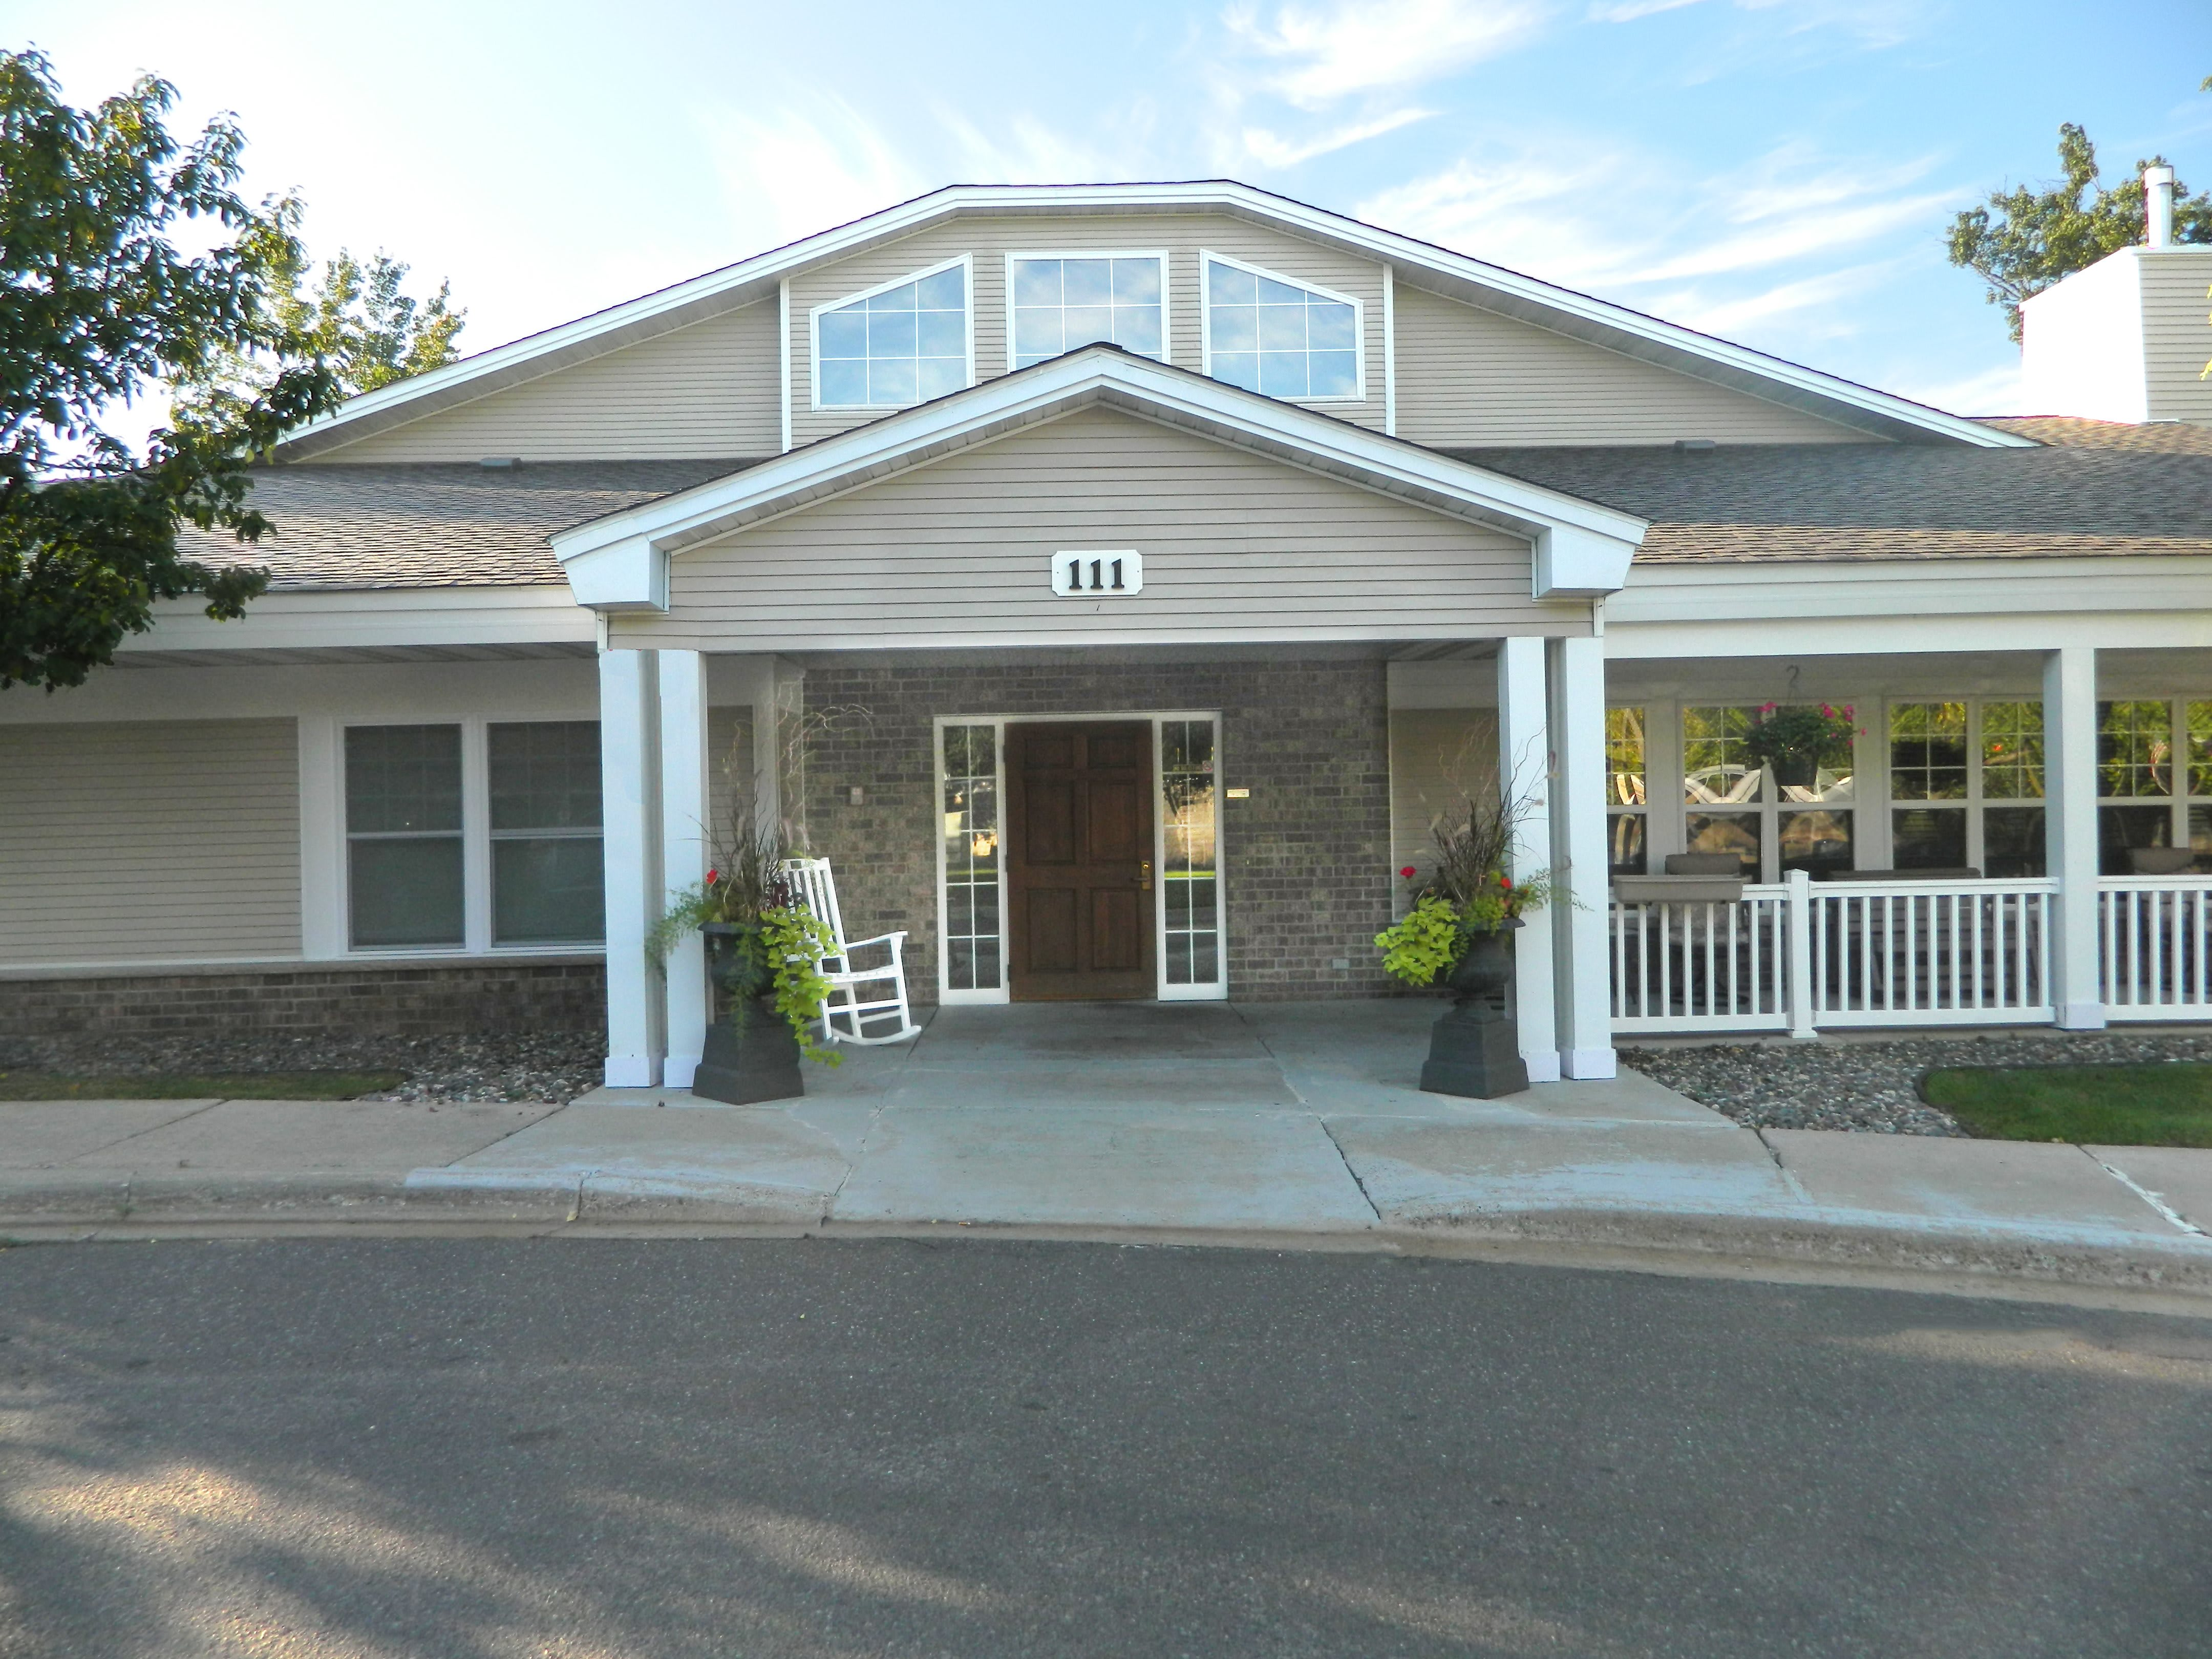 Photo 1 of New Perspective Senior Living | Mahtomedi